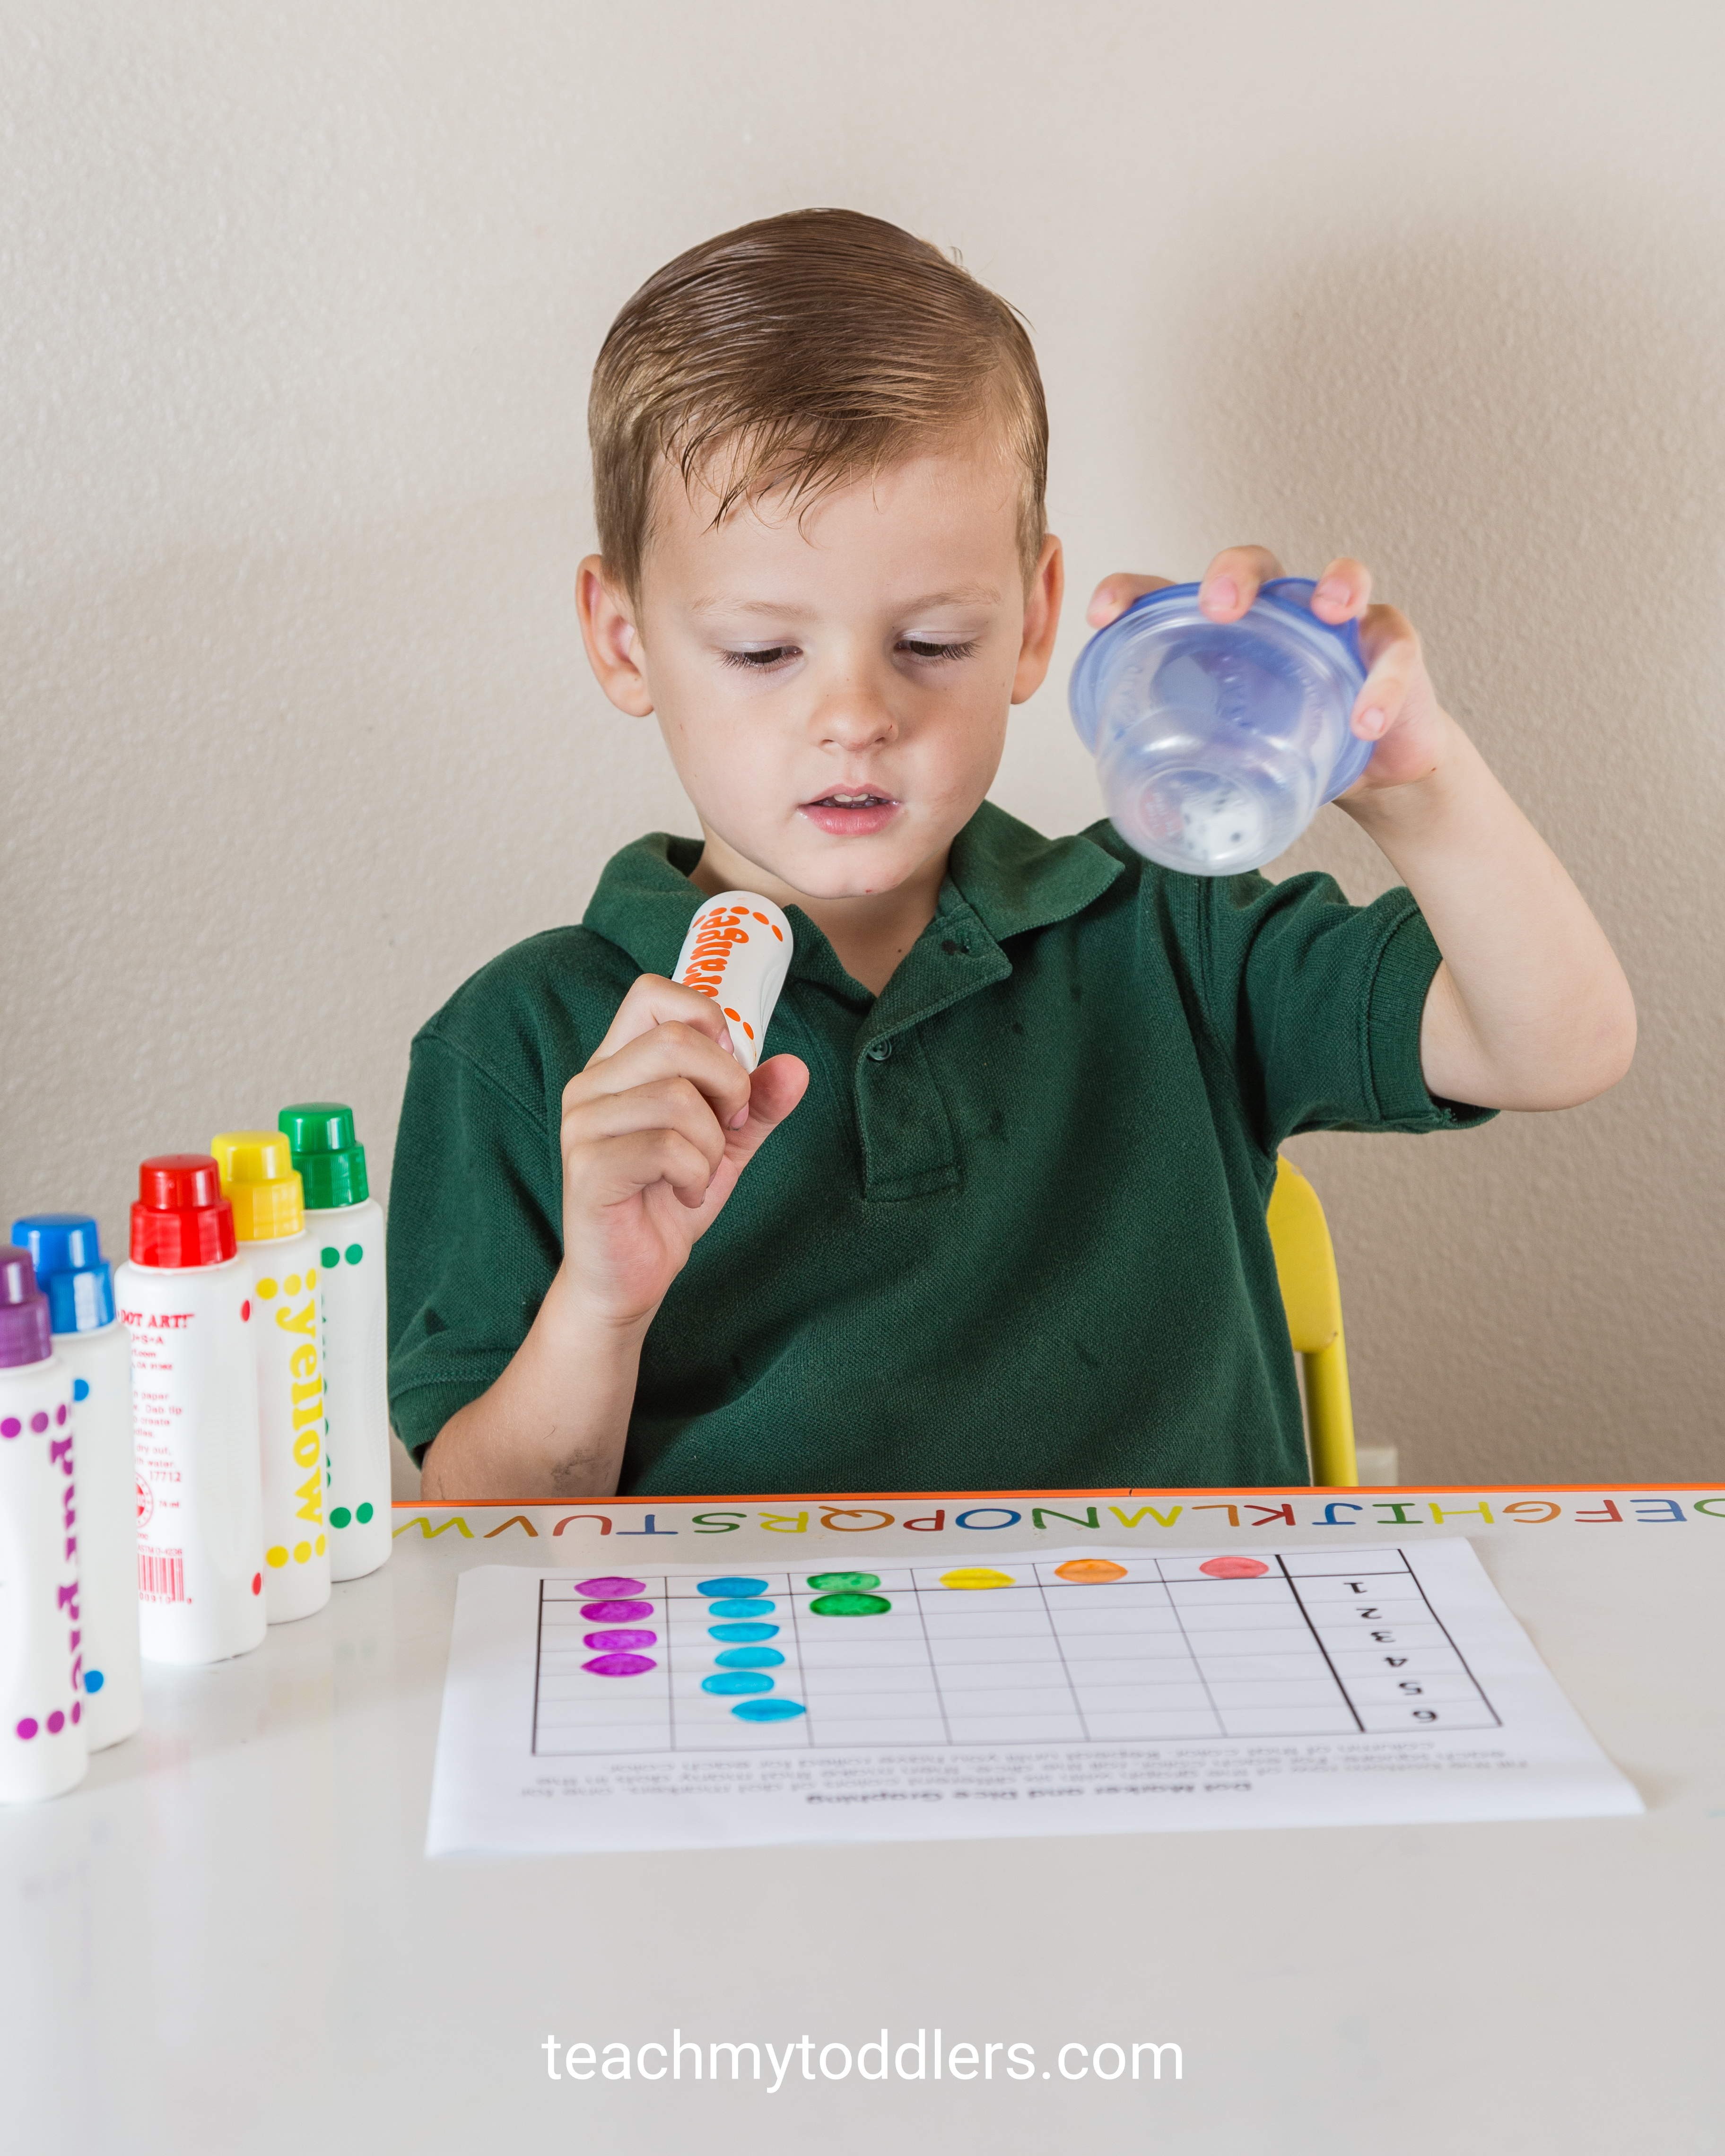 Find out how to use this dot marker dice graph activity to teach toddlers numbers